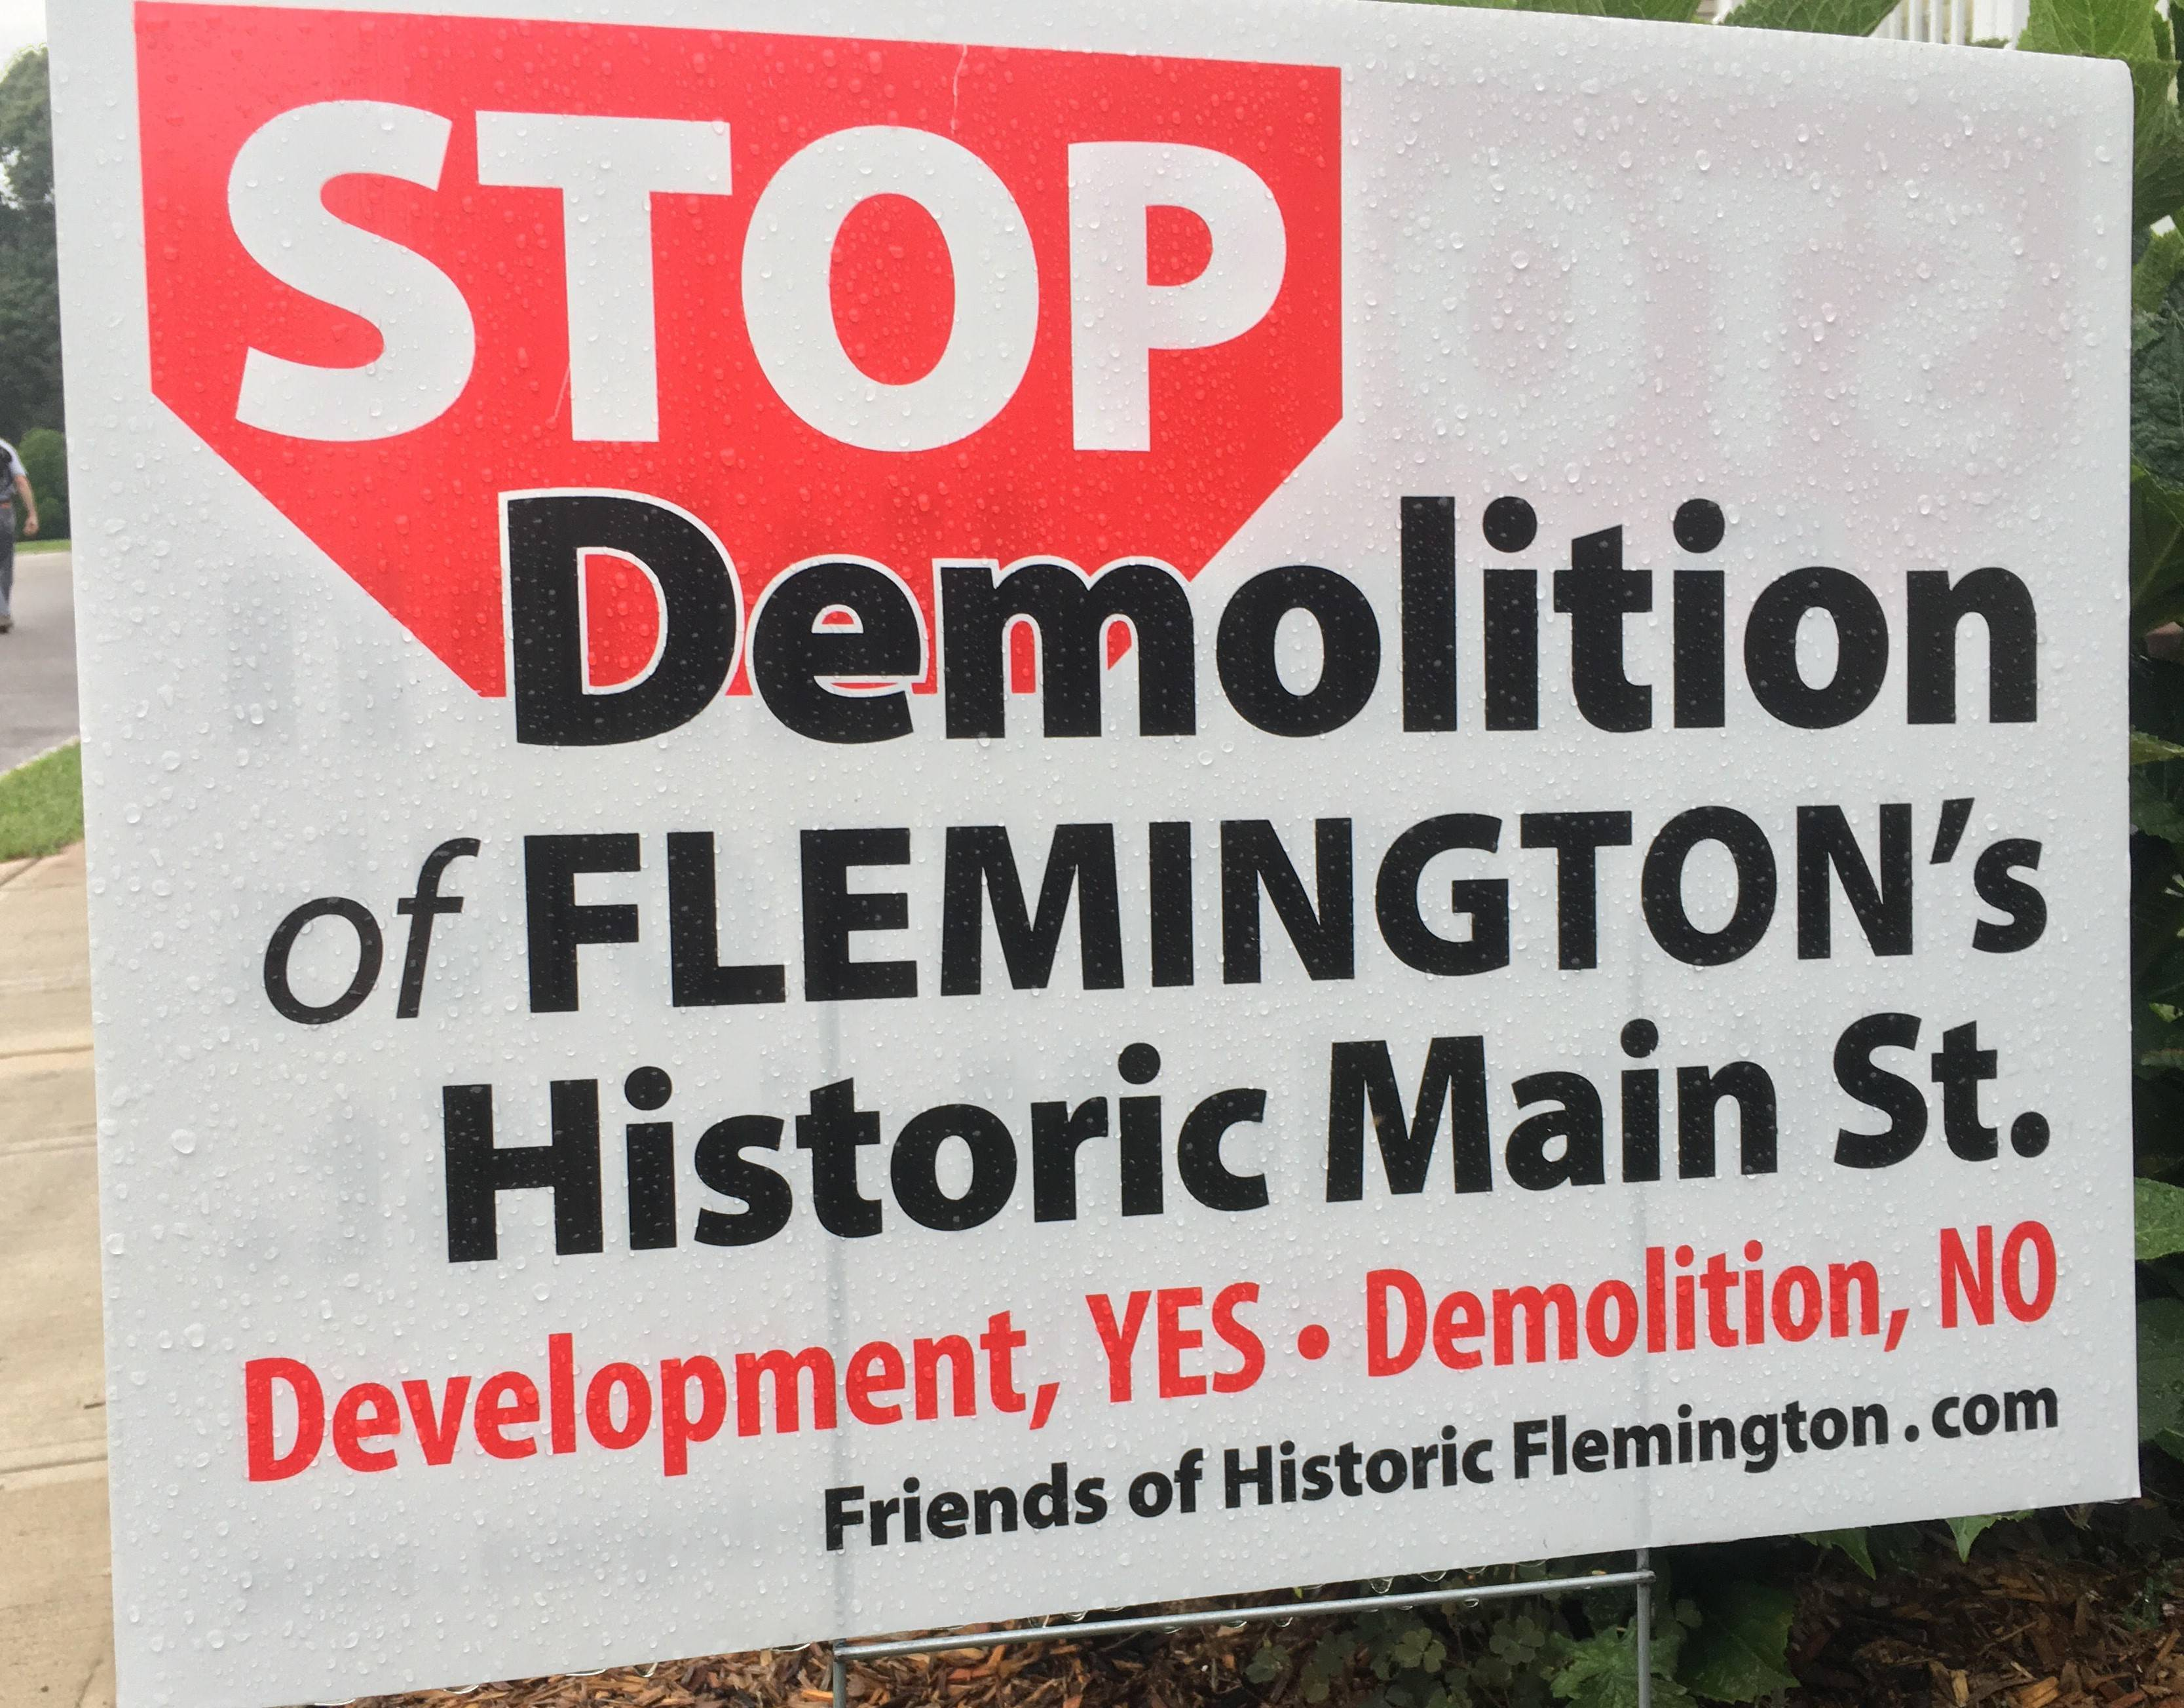 0bfb2fdf269ba954f089_Flemington_Stop_Demolition_Sign_02.jpg